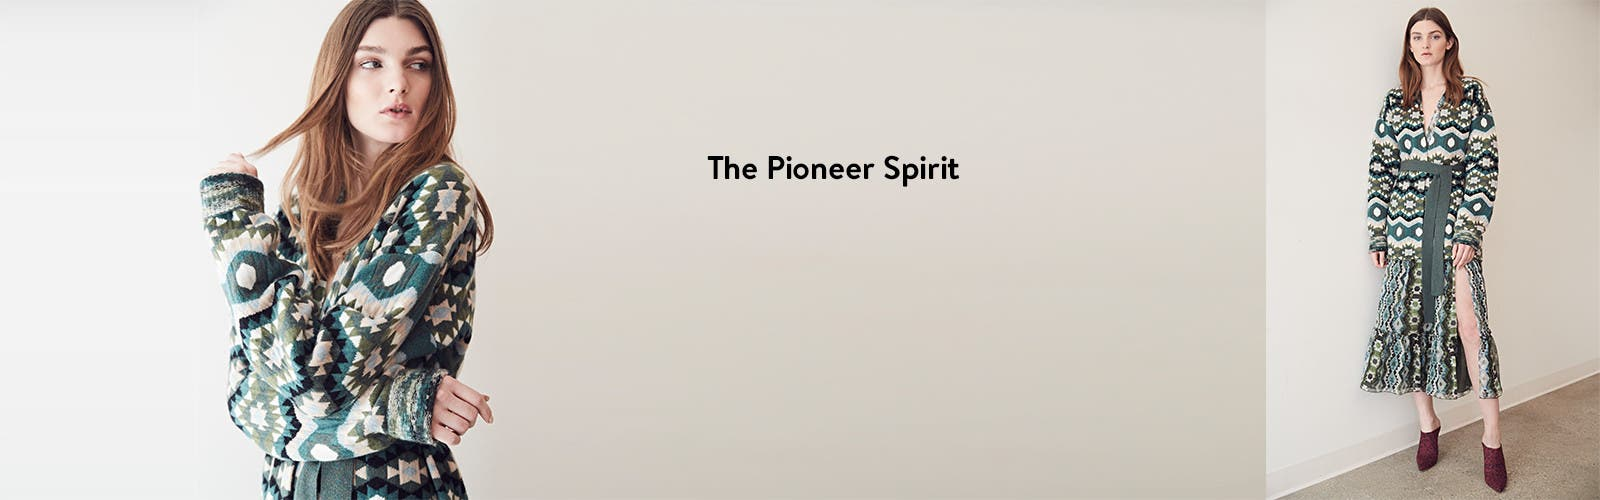 The pioneer spirit: designer trend.